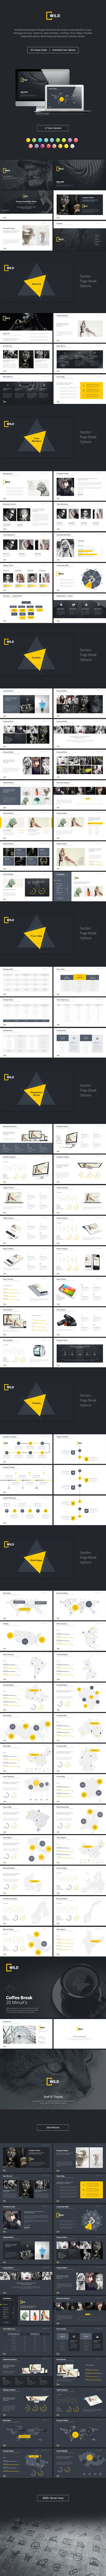 Wild_Presentation Template  #inspiration #smart #corporate • Download ➝ https://graphicriver.net/item/wild_presentation-template/18644902?ref=pxcr